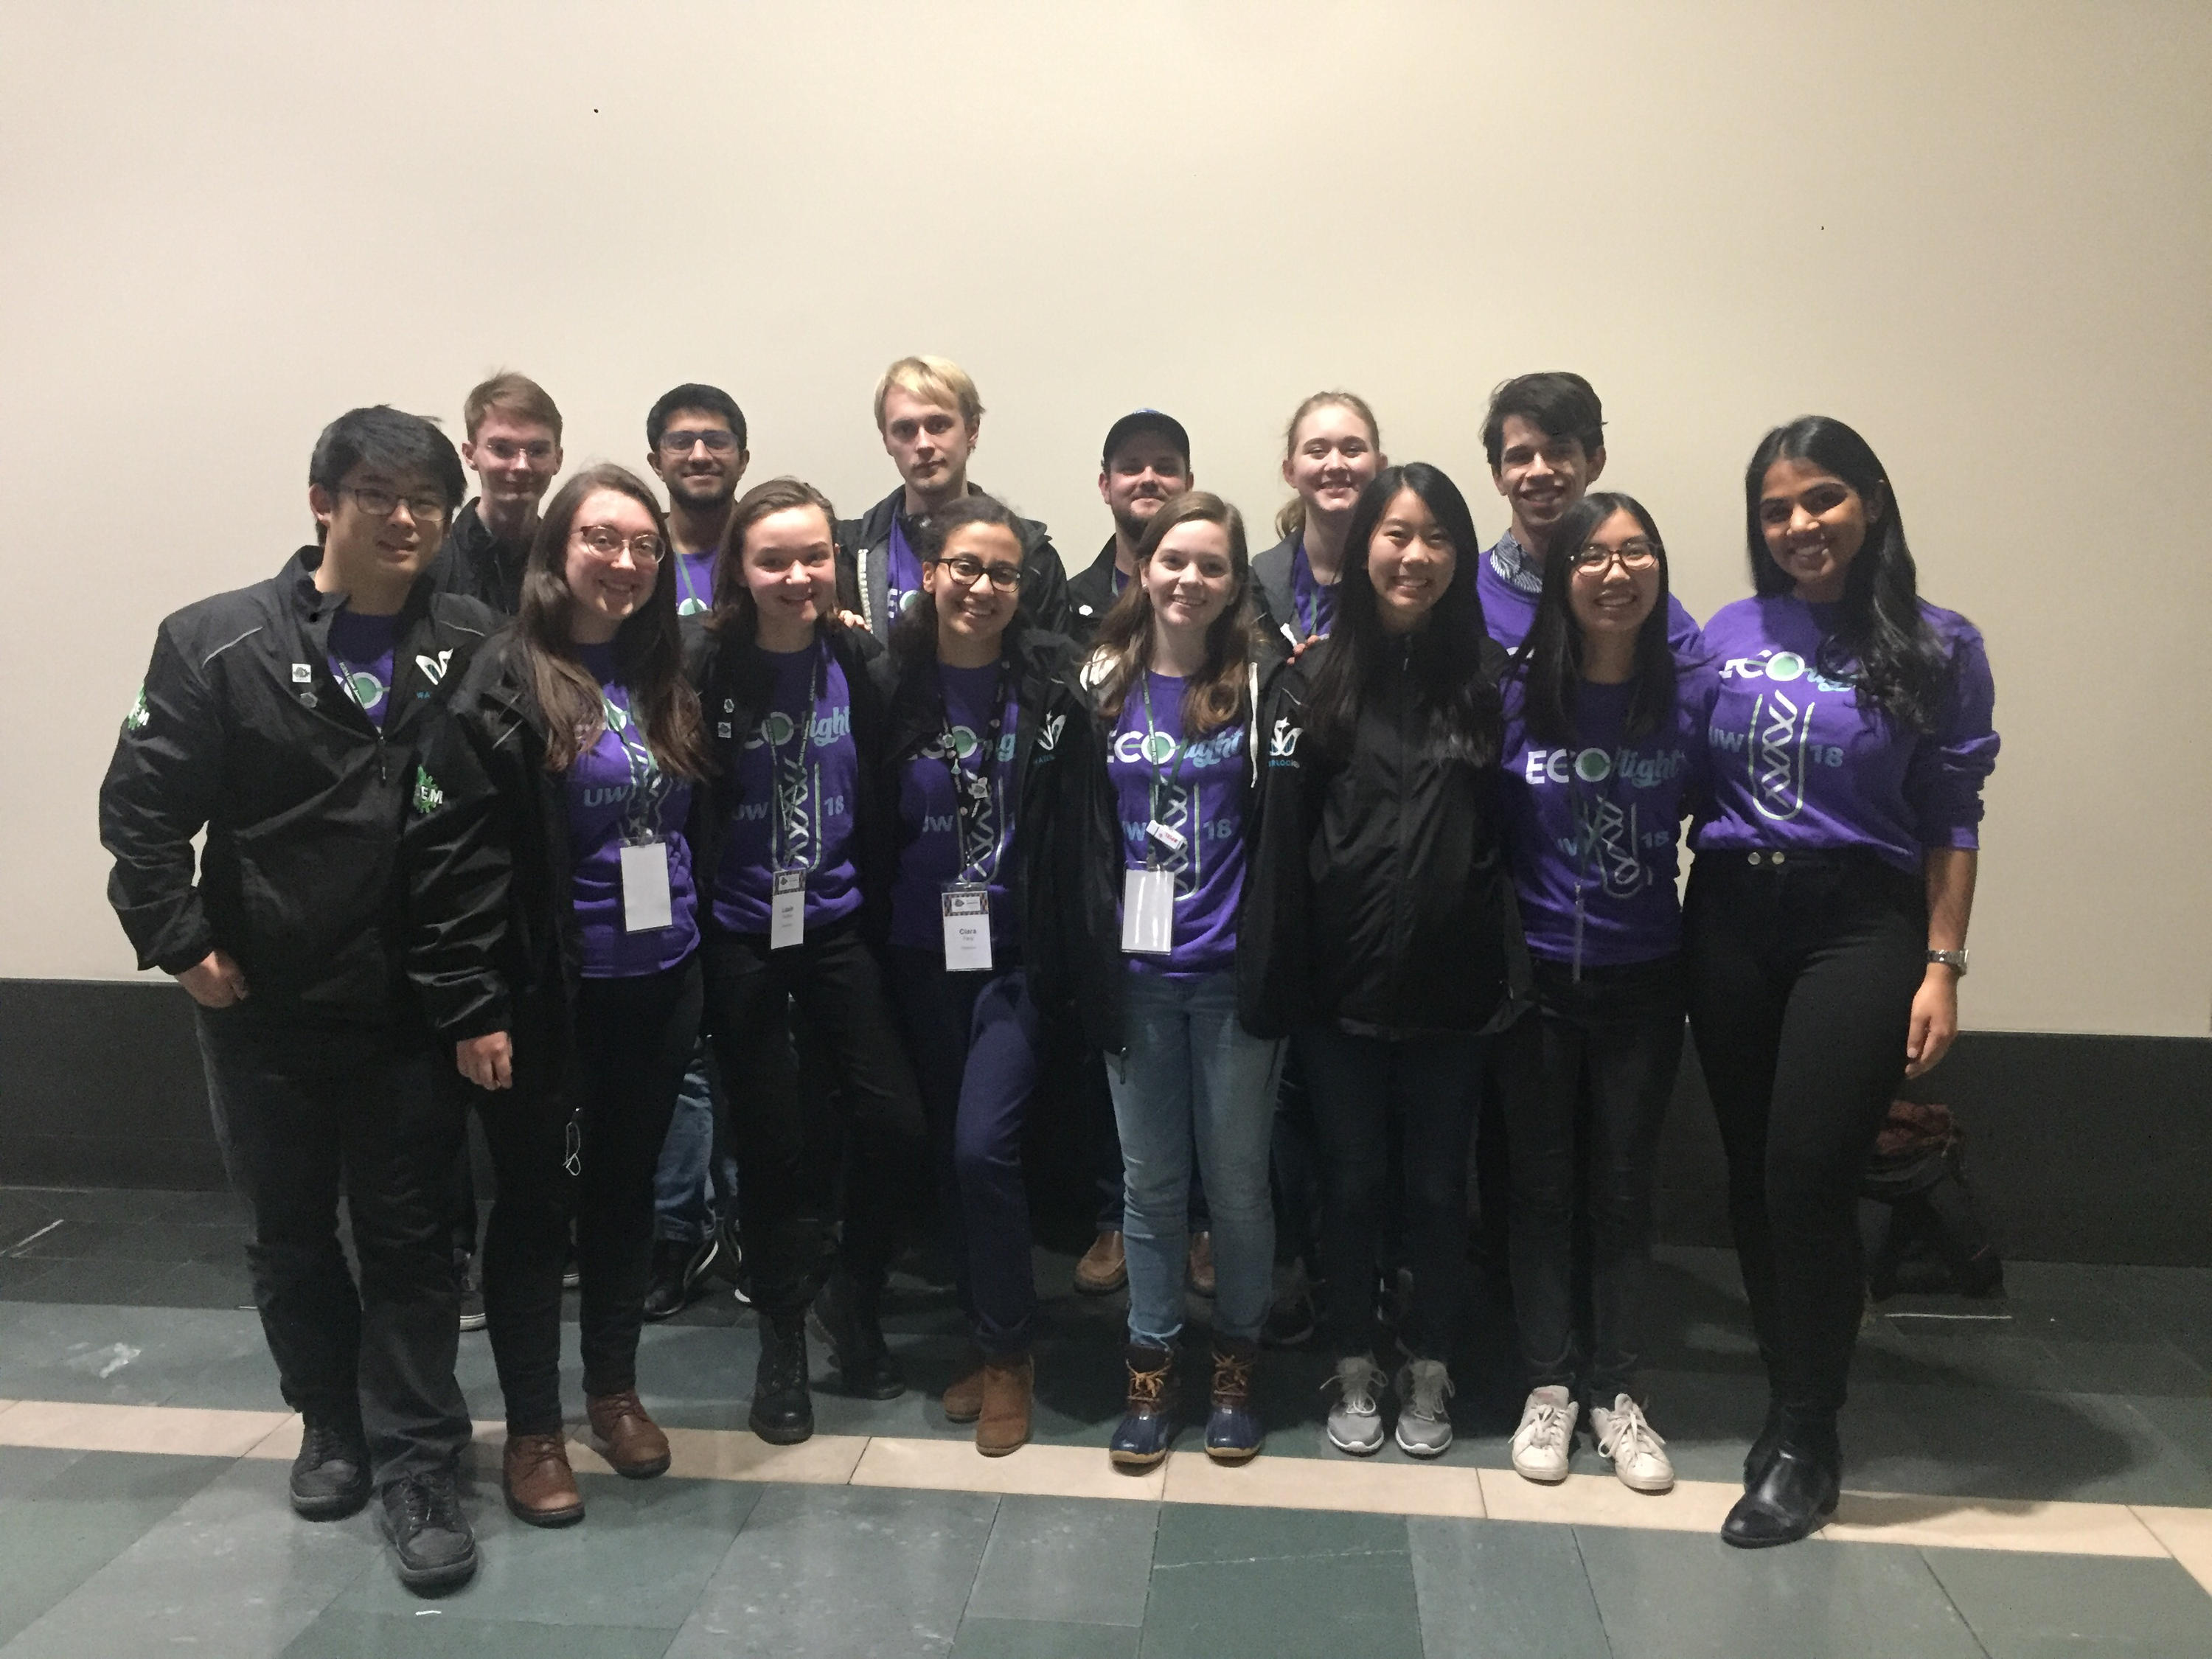 Waterloo iGEM team poses at competition